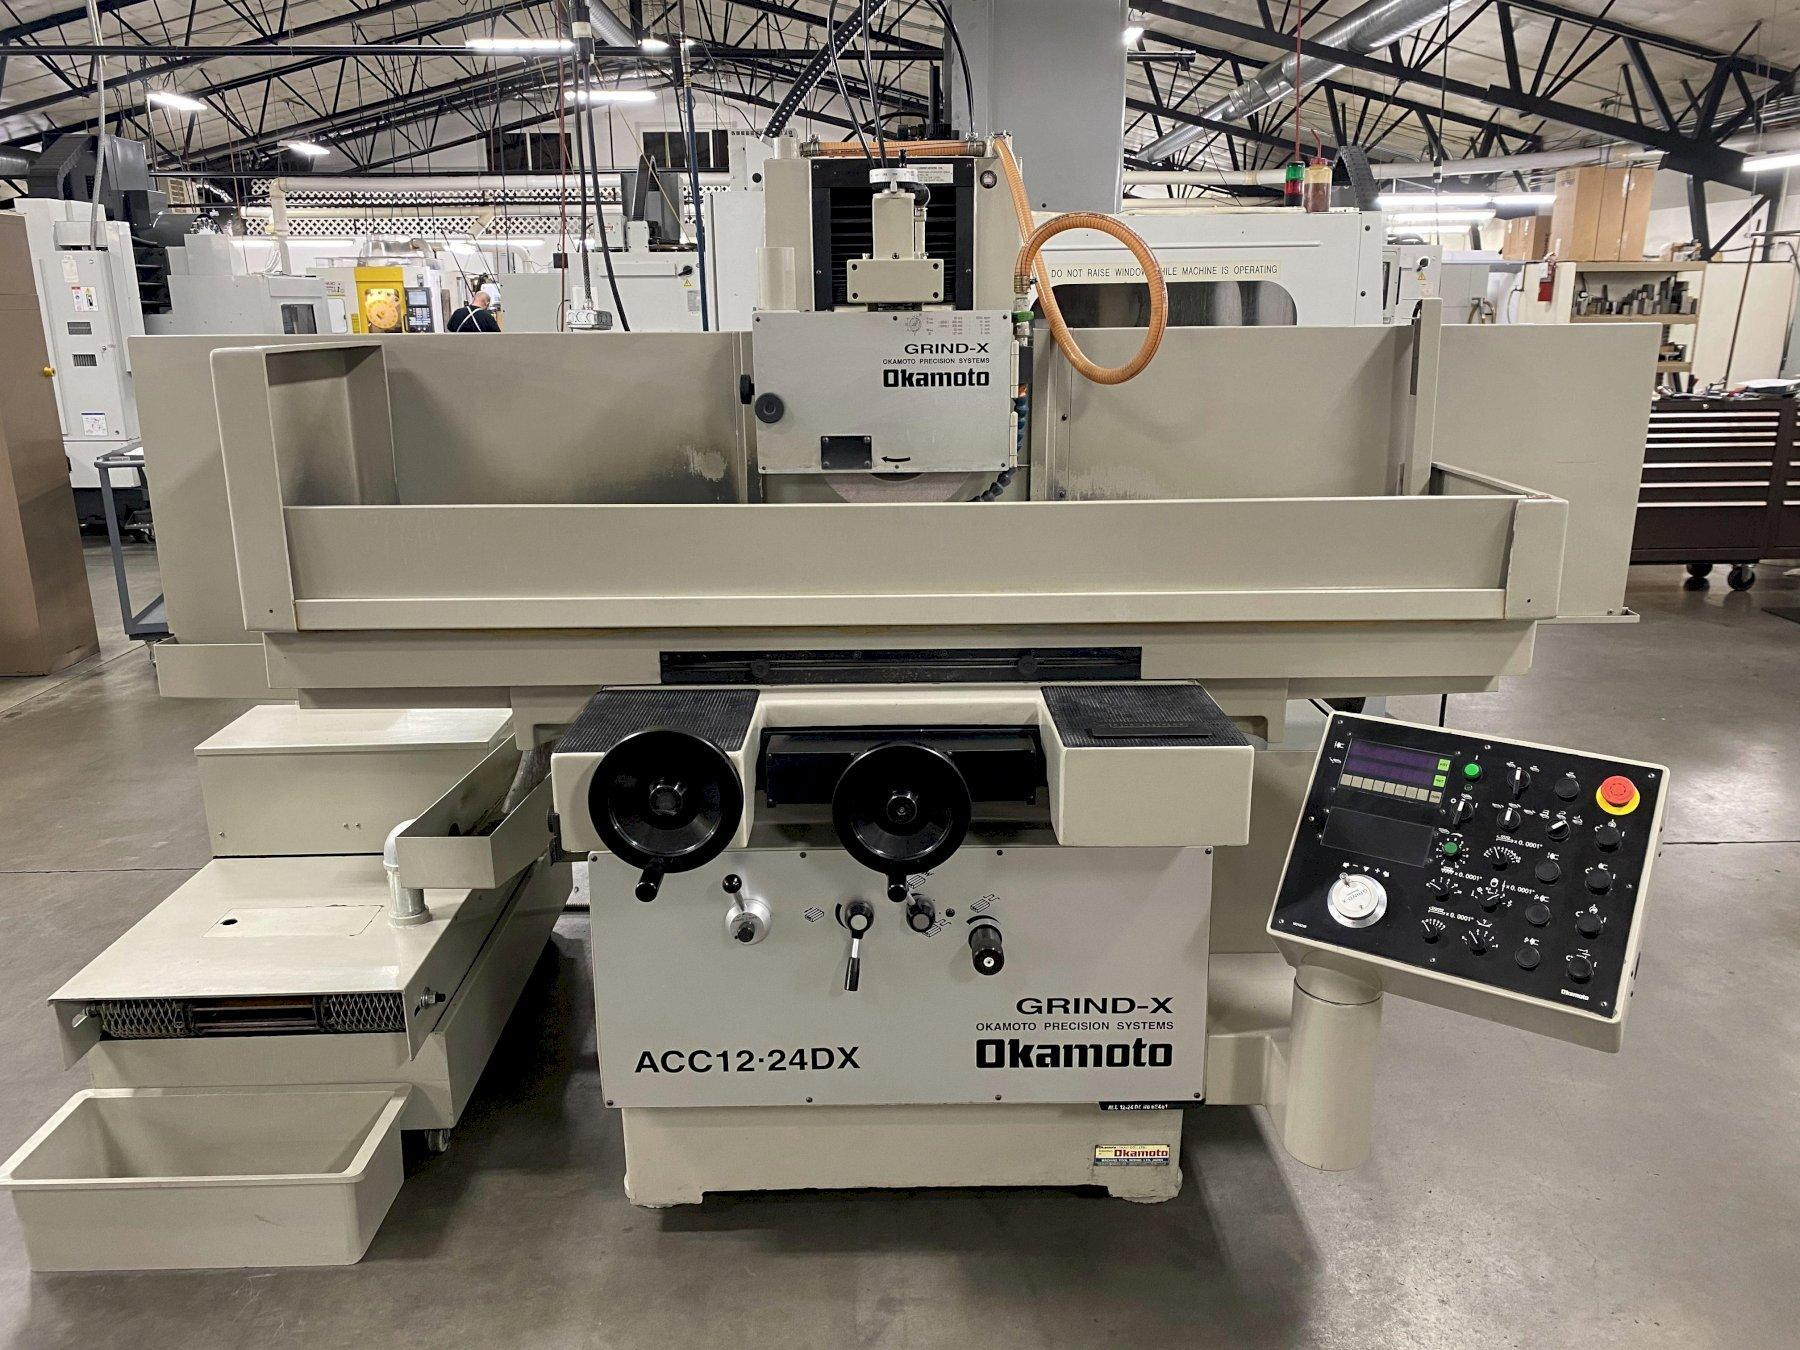 Okamoto ACC-12-24 DX Hydraulic Surface Grinder 2011 with: Okamoto Control, Walker Magnetic 12x24 Chuck, Hydraulic Over Wheel Dresser, 5